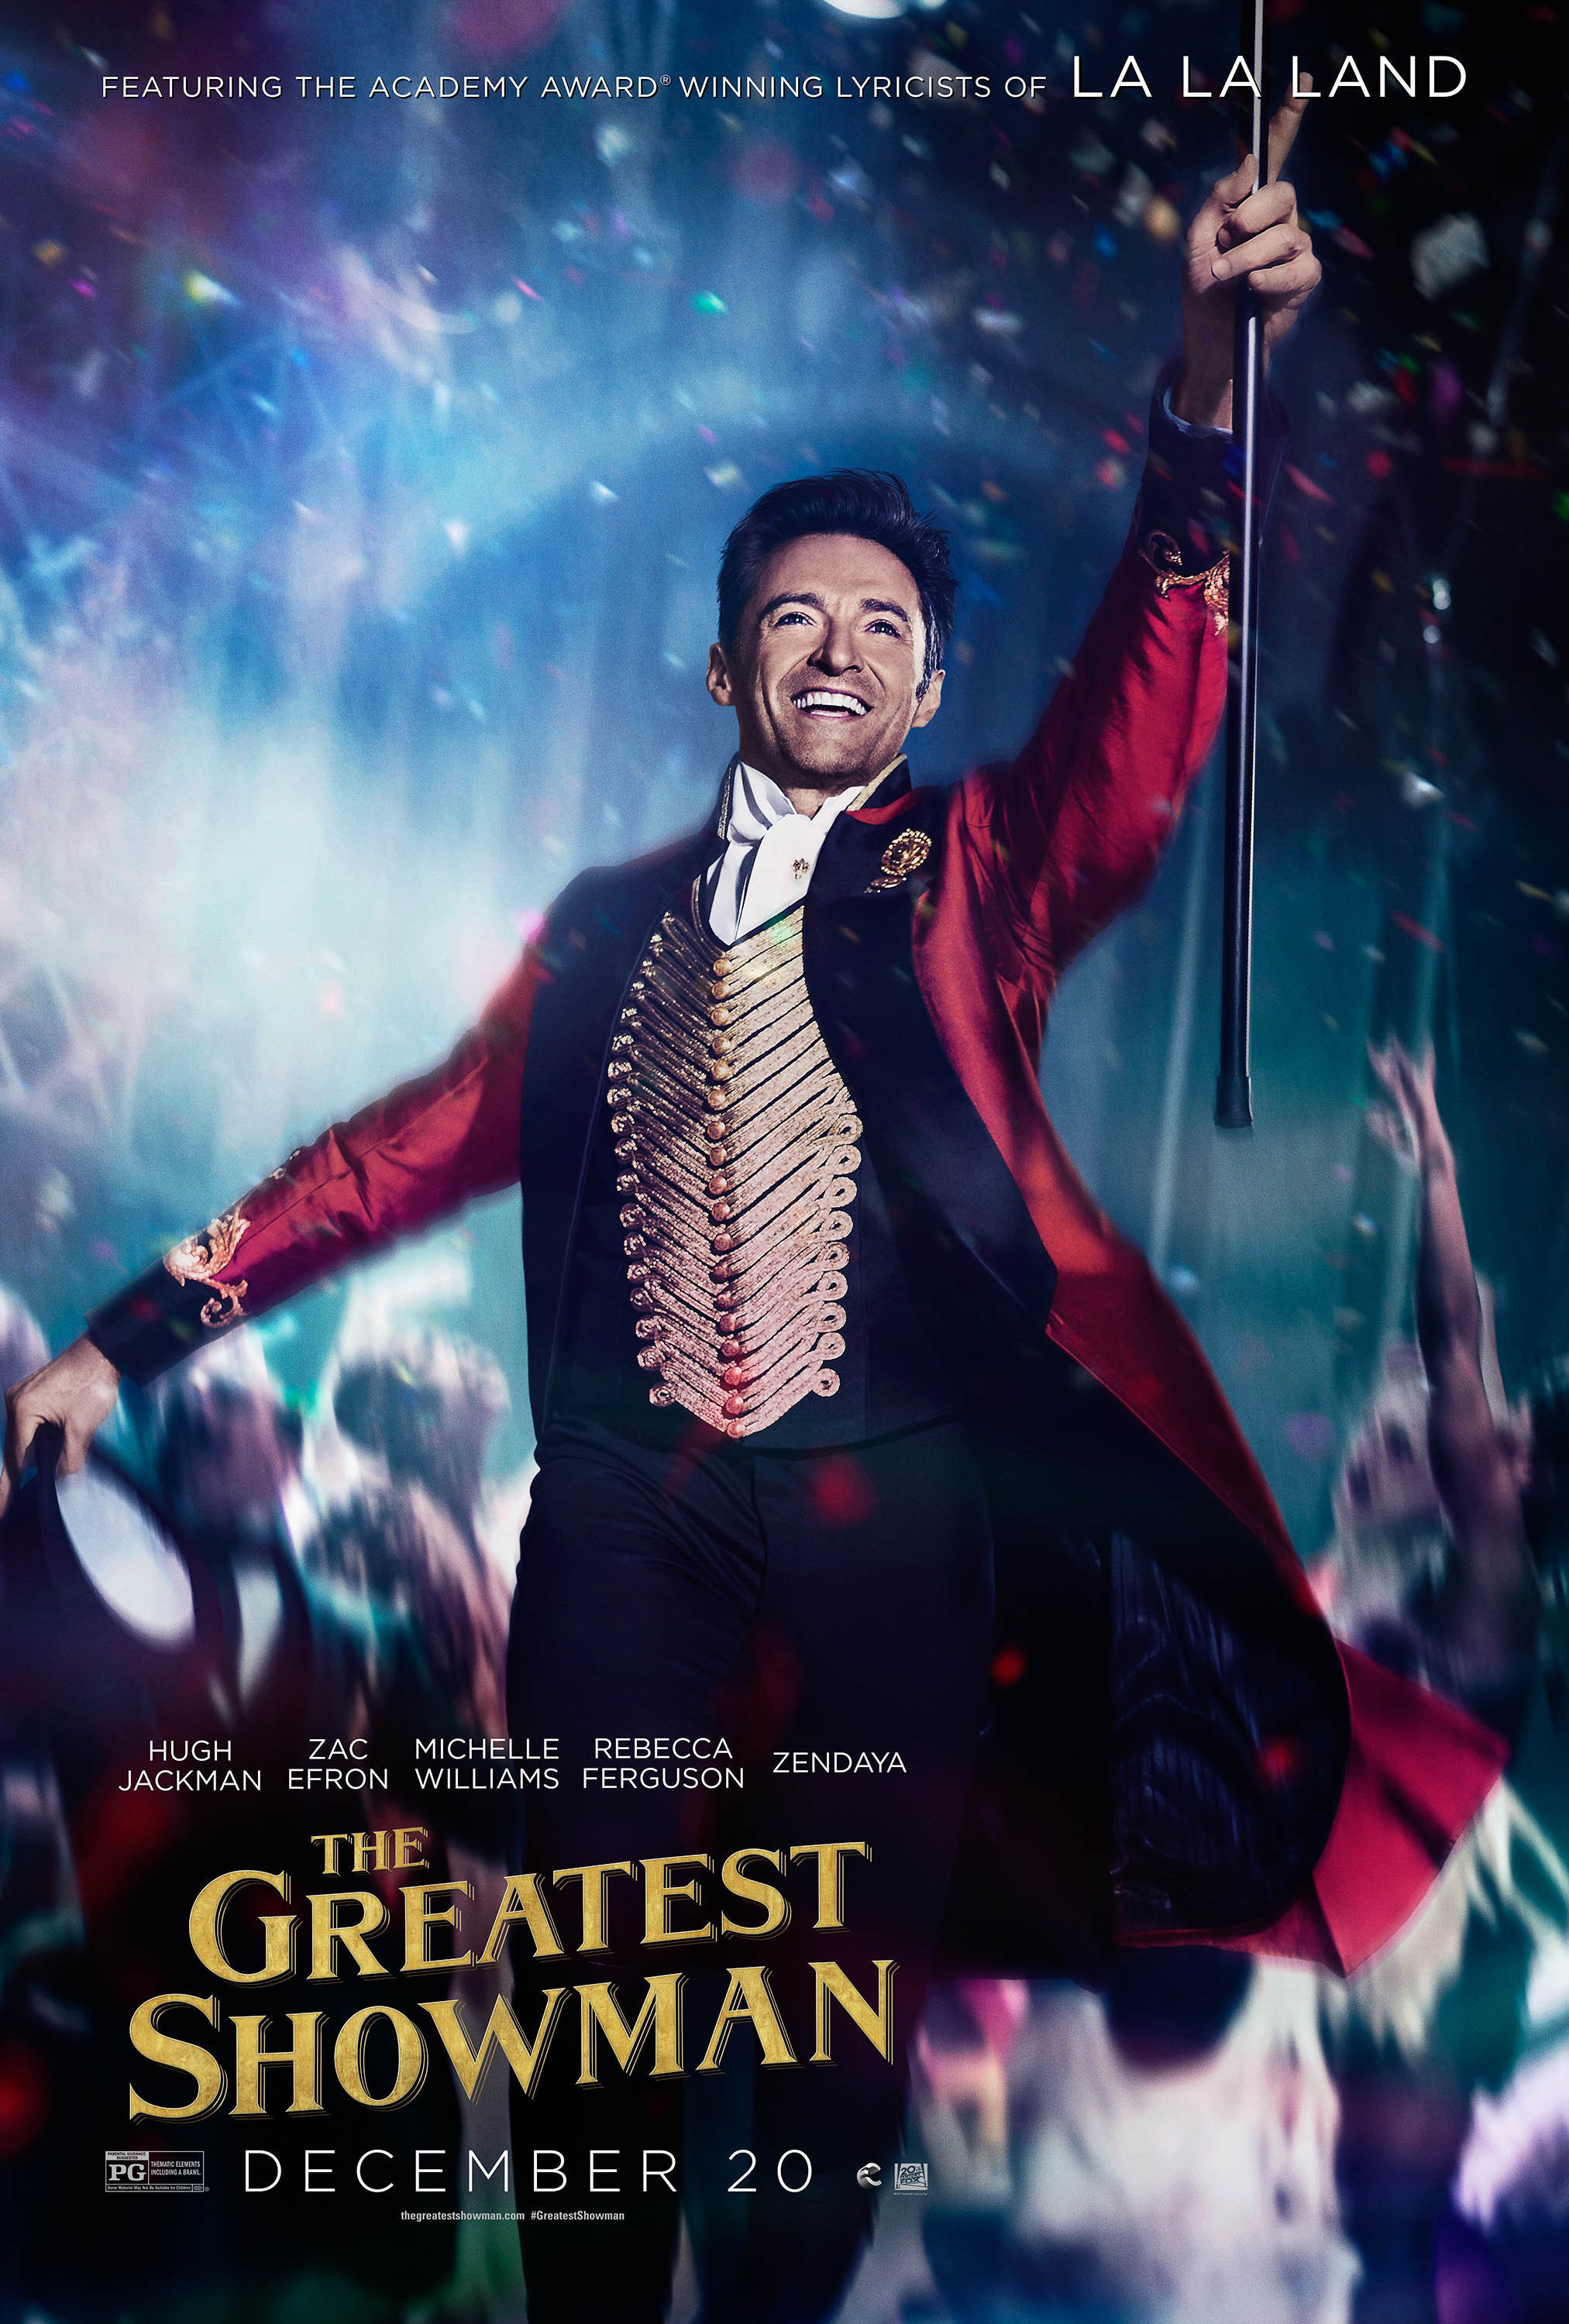 the-greatest-showman-posters-2017-tgs-ba